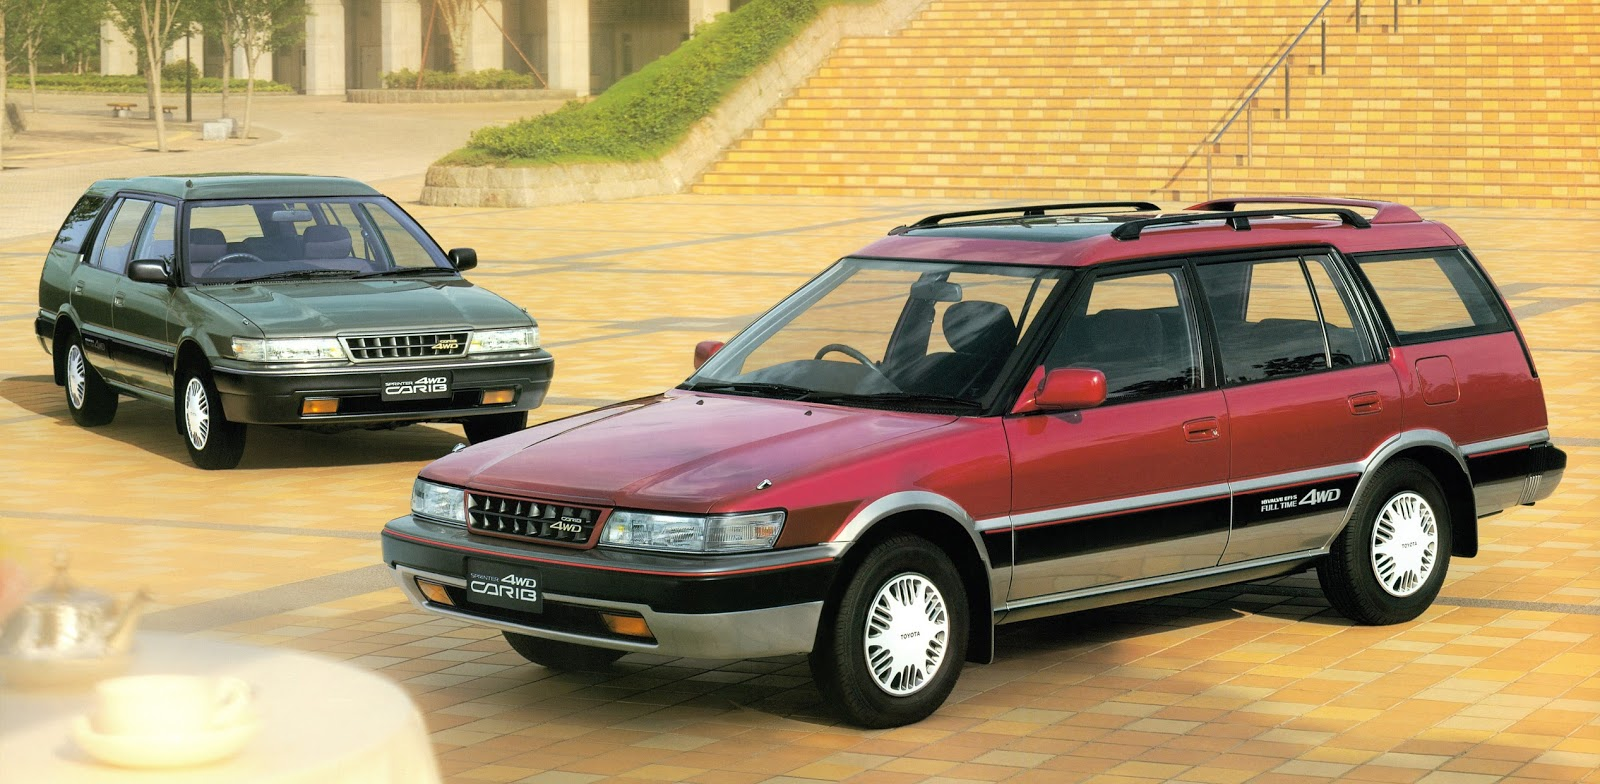 87 92 toyota corolla wagon all trac ae95 and ae95g 2nd gen sprinter carib. Black Bedroom Furniture Sets. Home Design Ideas